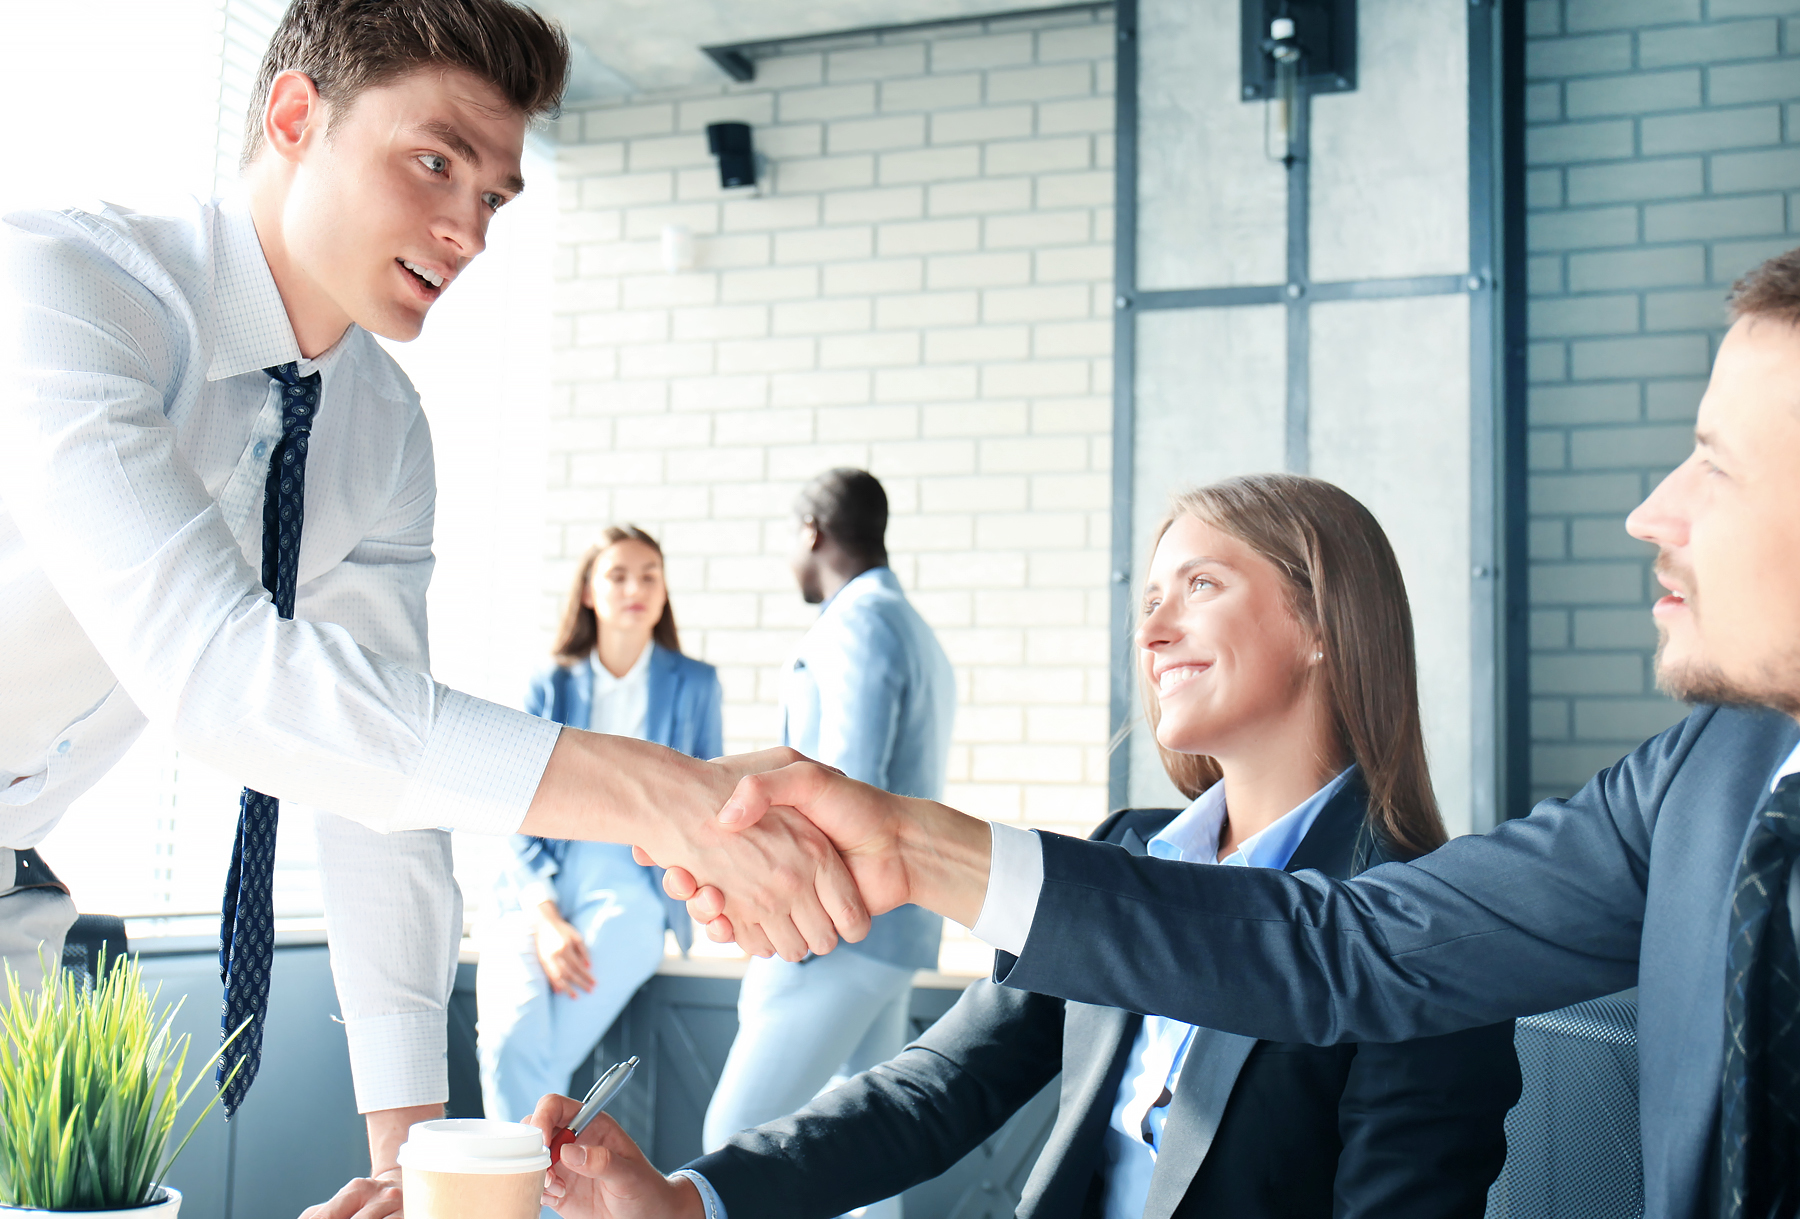 Two business professionals shaking hands as female professional looks on.